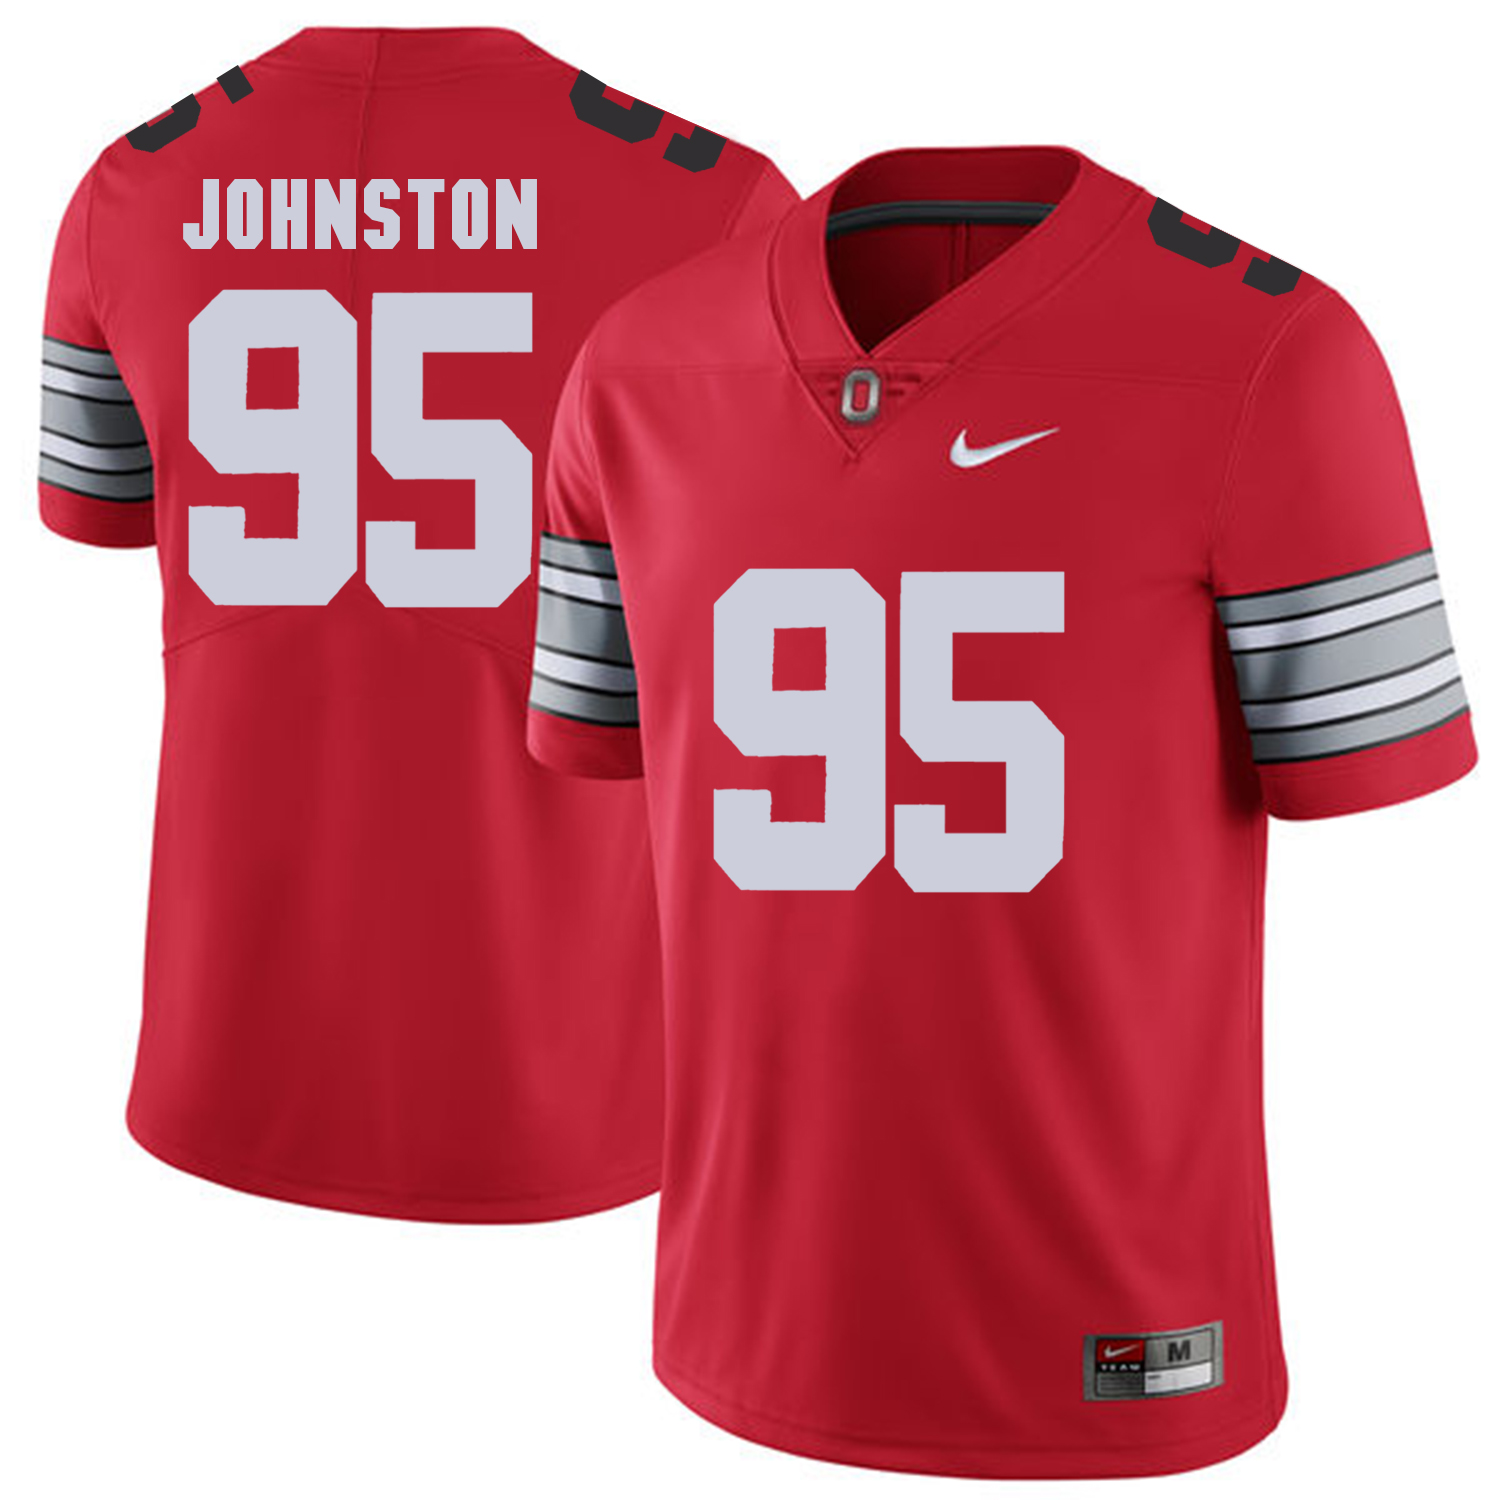 Men Ohio State 95 Johnston Red Customized NCAA Jerseys